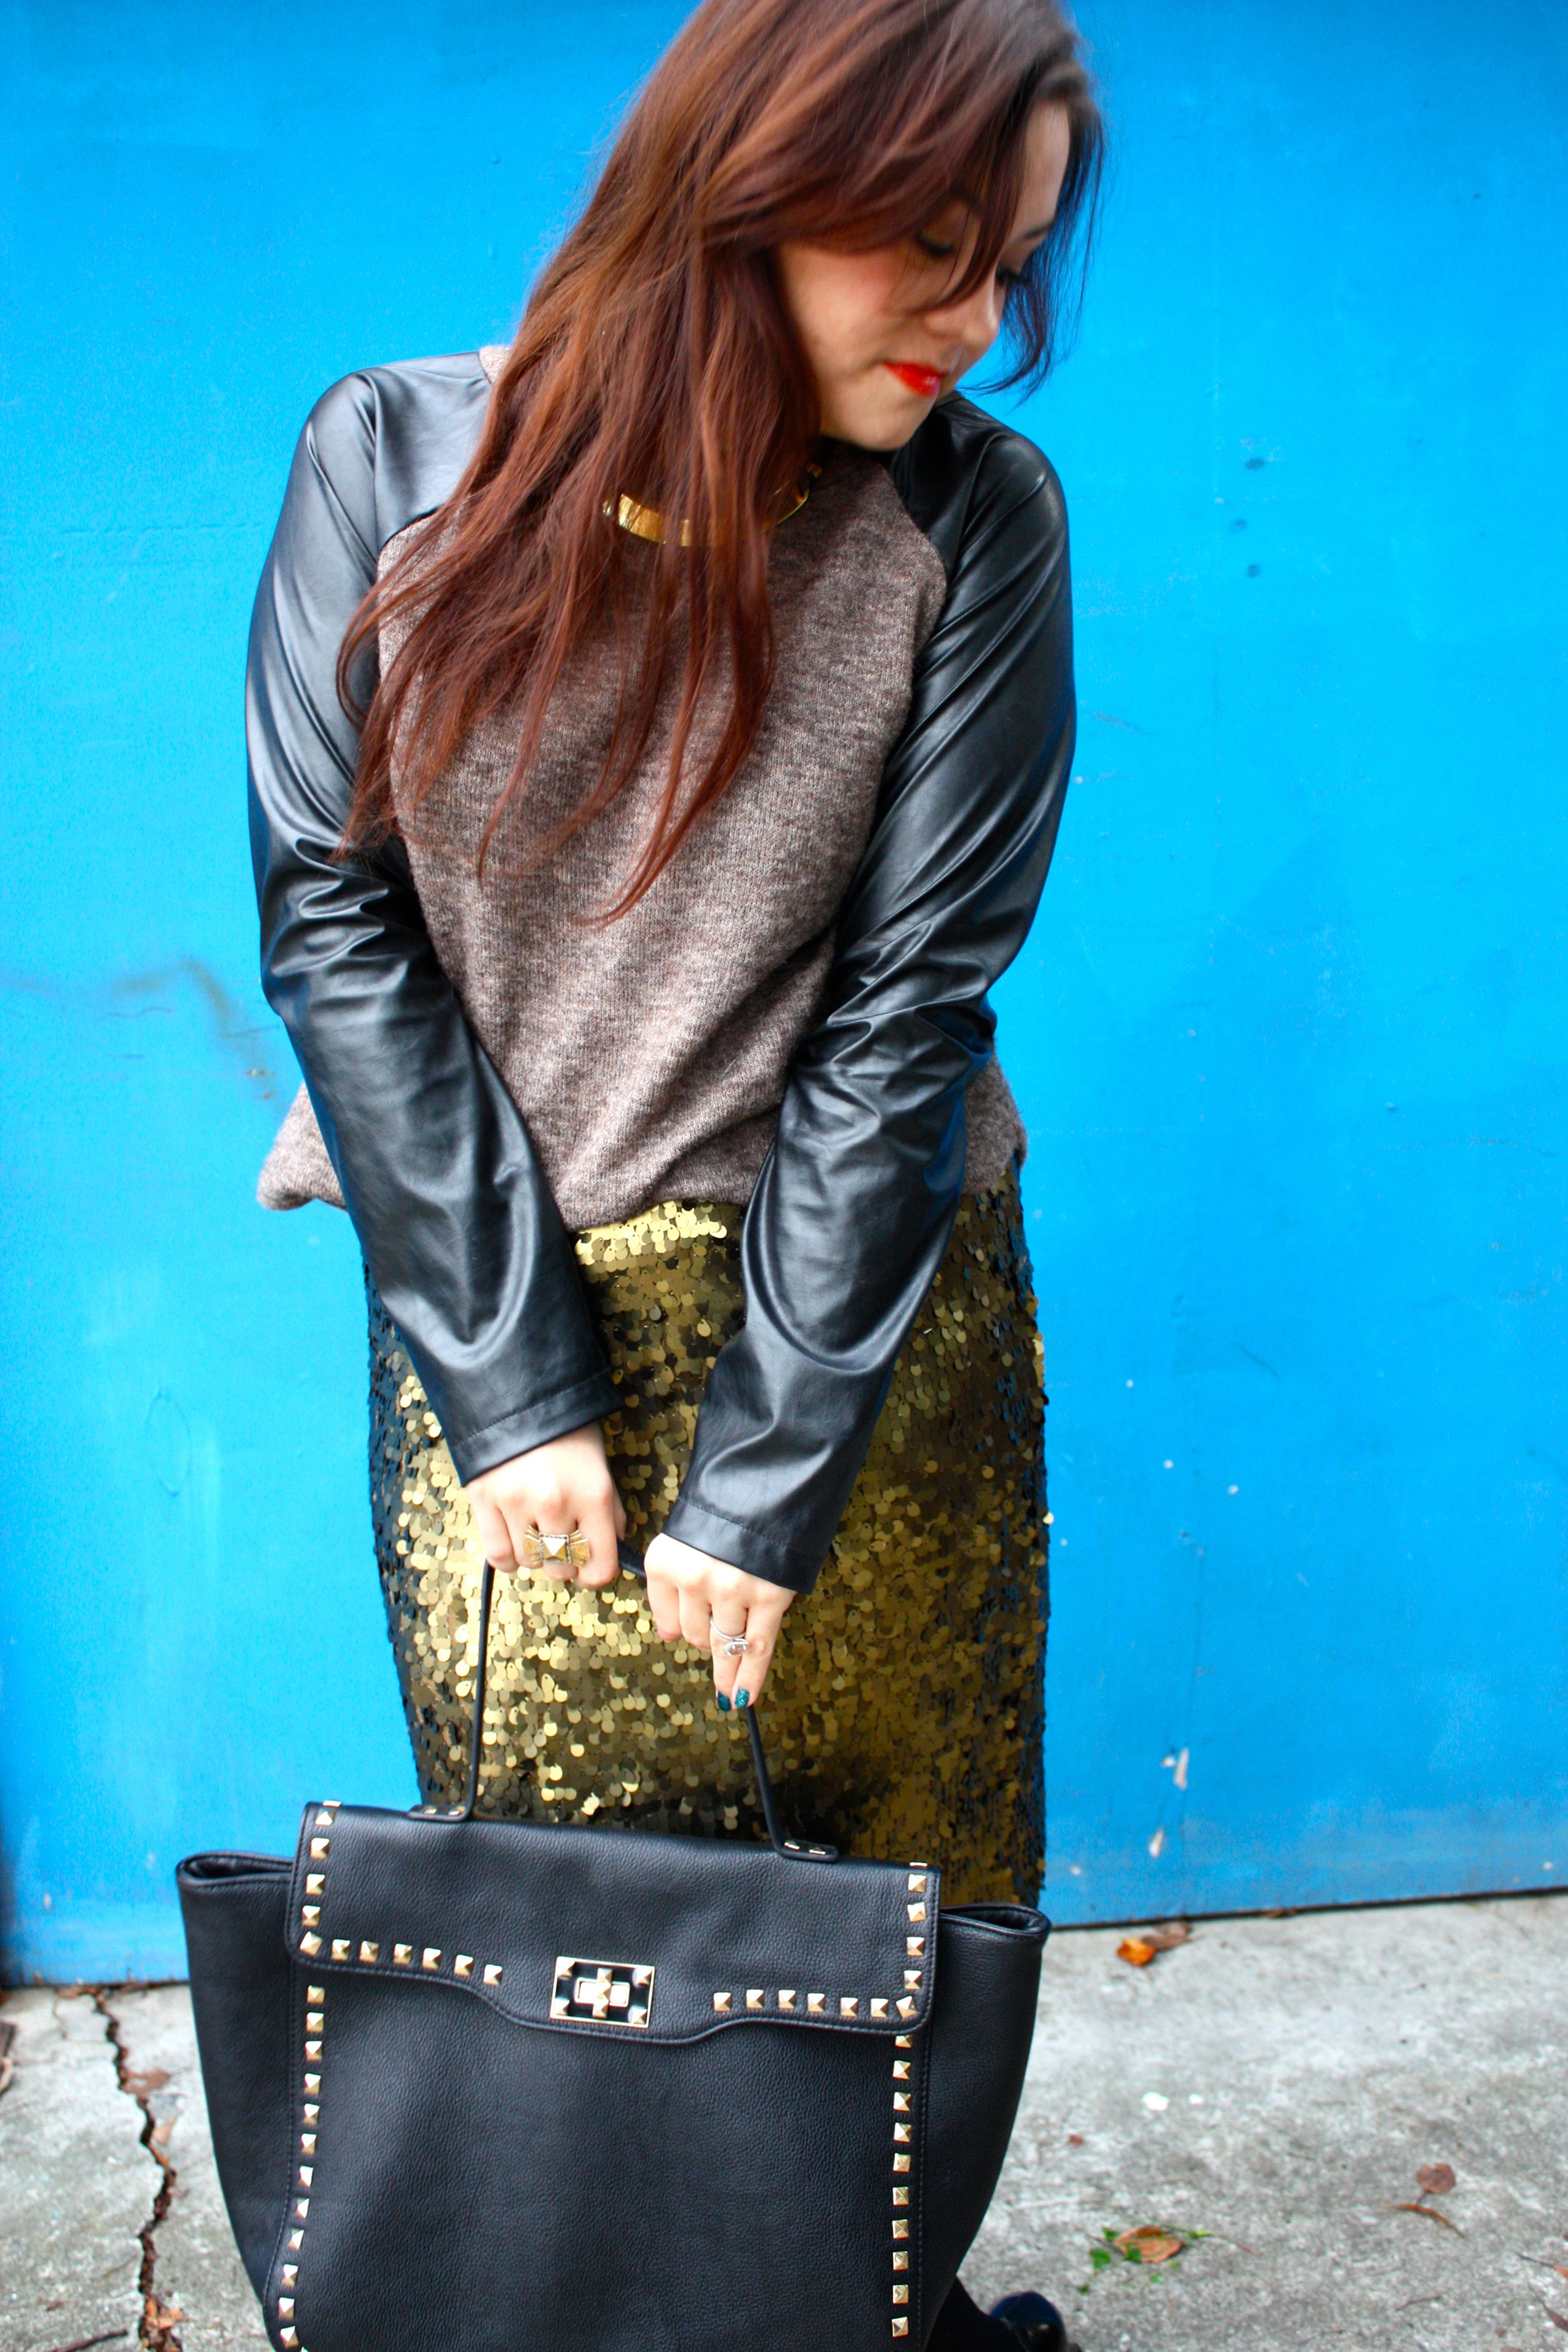 sequin pencil skirt - leather sleeve raglan sweater - studded trim tote - tights - ankle boots12